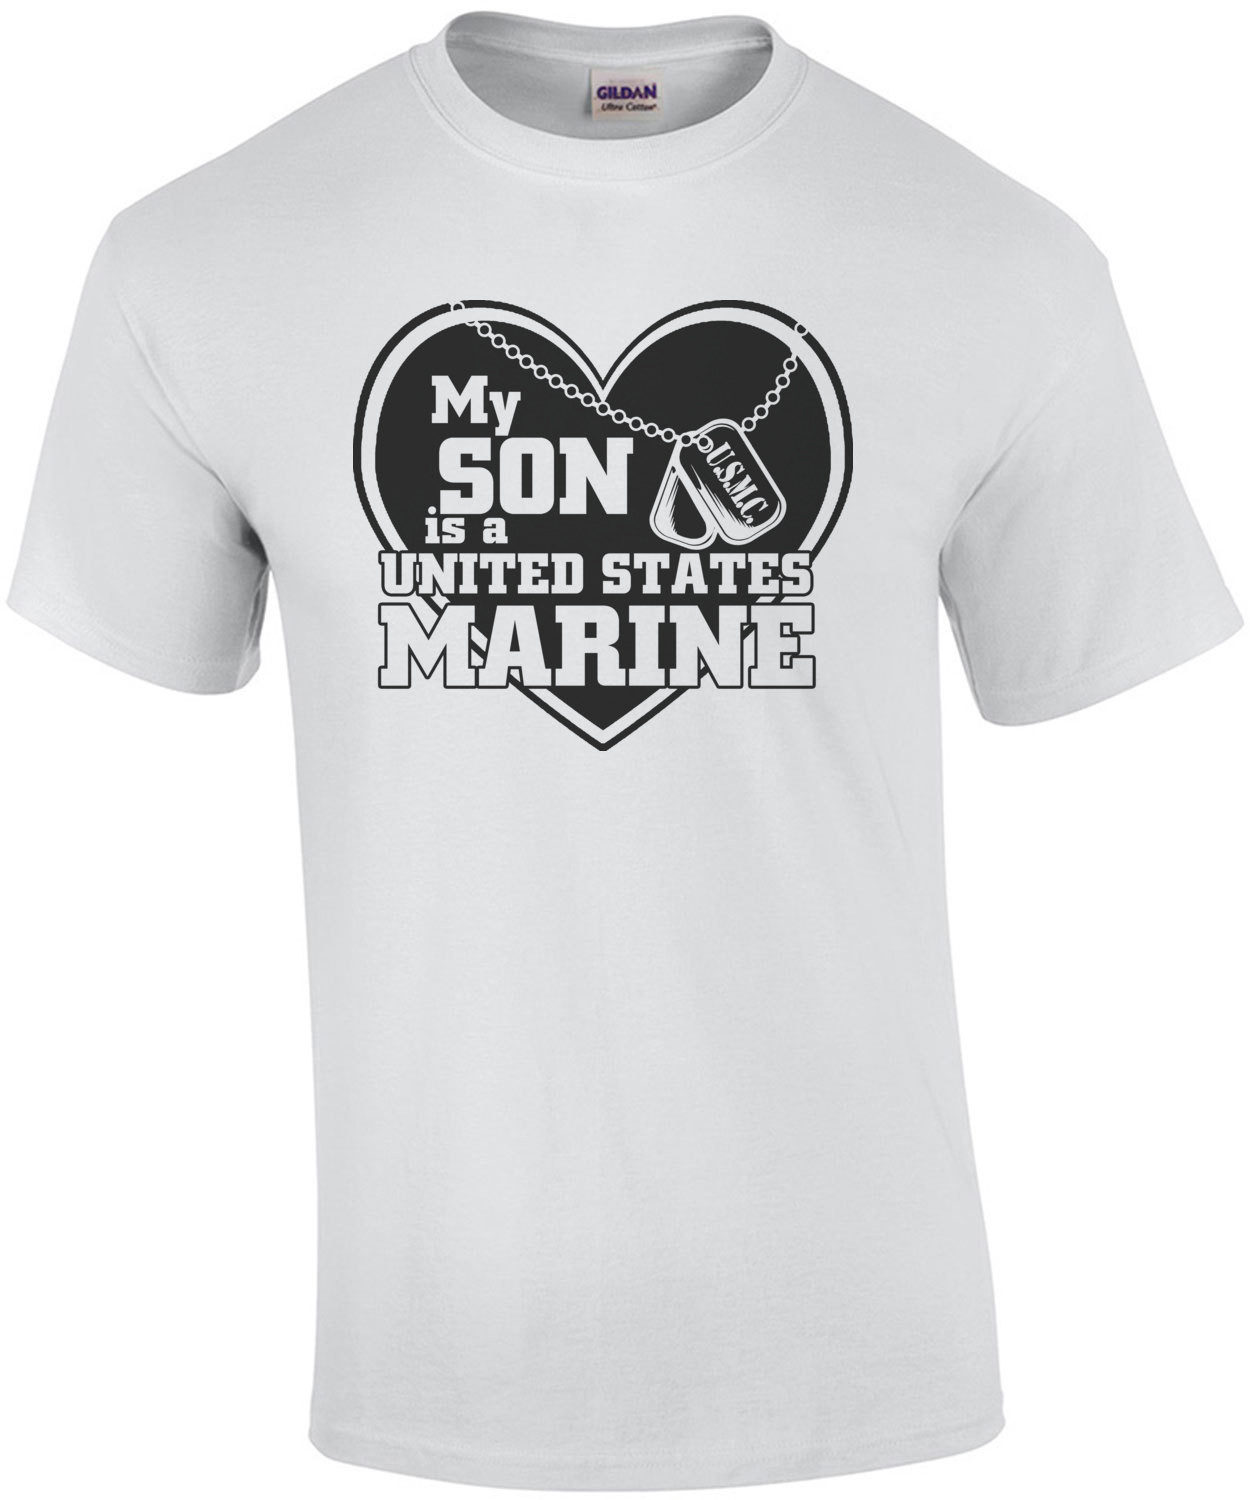 My Son Is A United States Marine T-Shirt